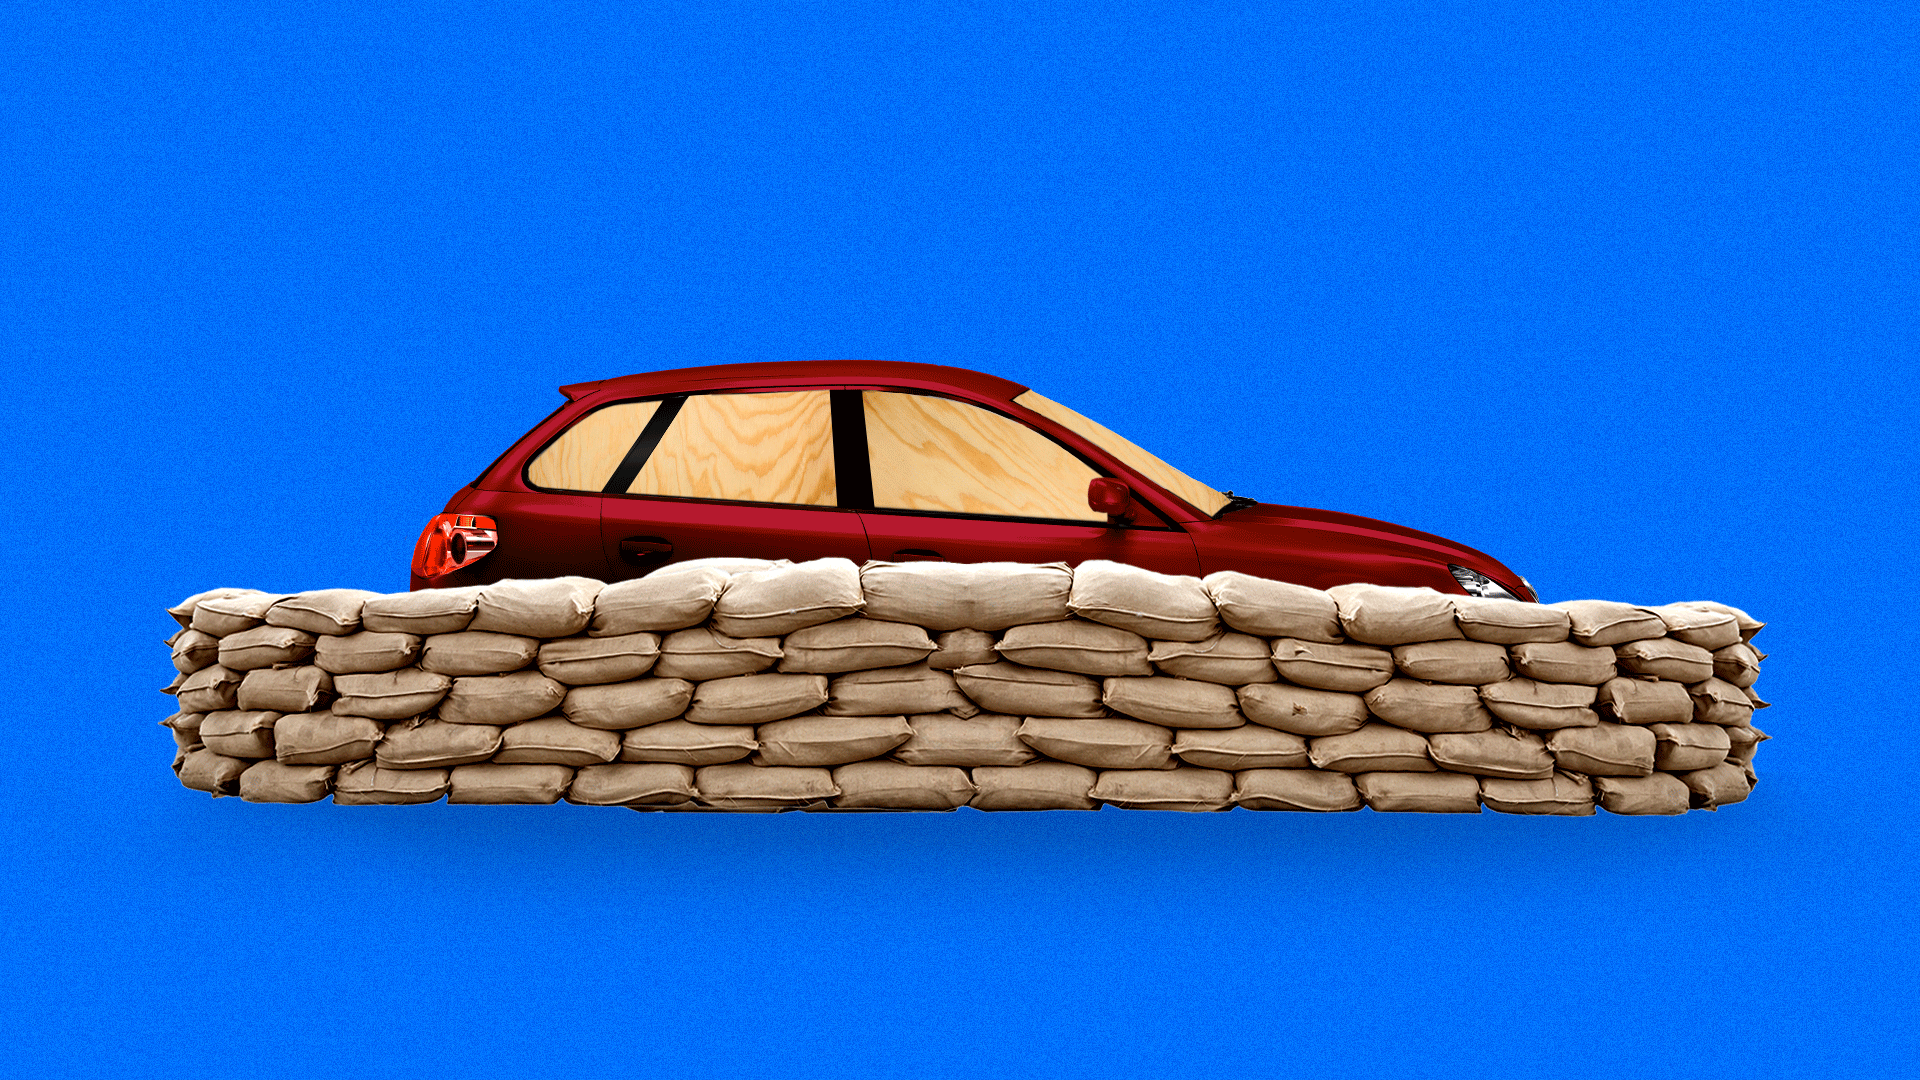 Illustration of a car behind sandbags with wood panels for windows.